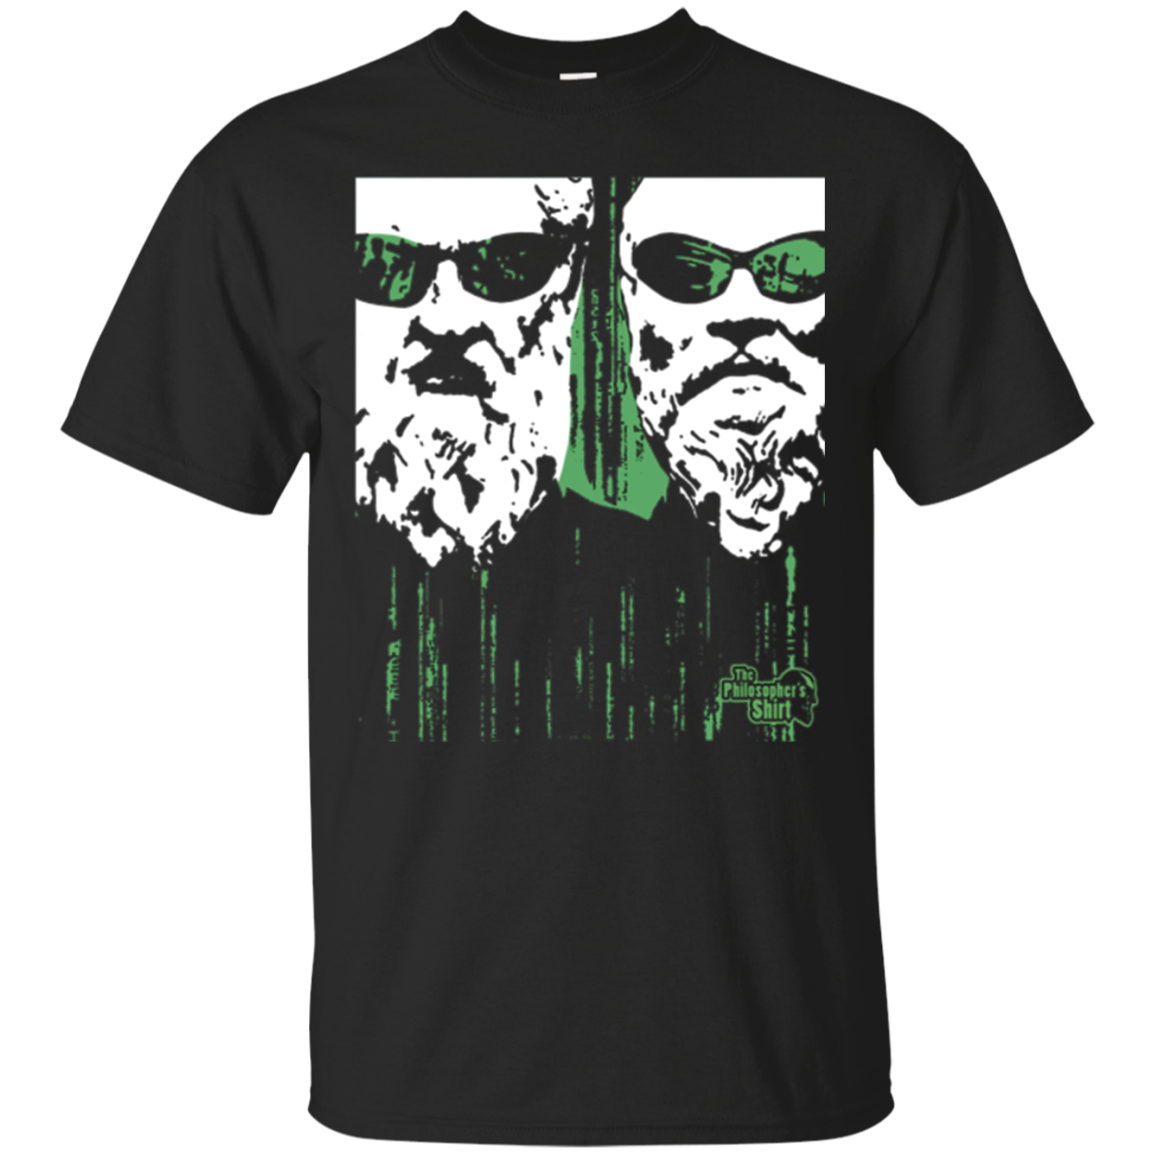 Plato and Socrates Matrix Cave Allegory - Philosopher Shirt